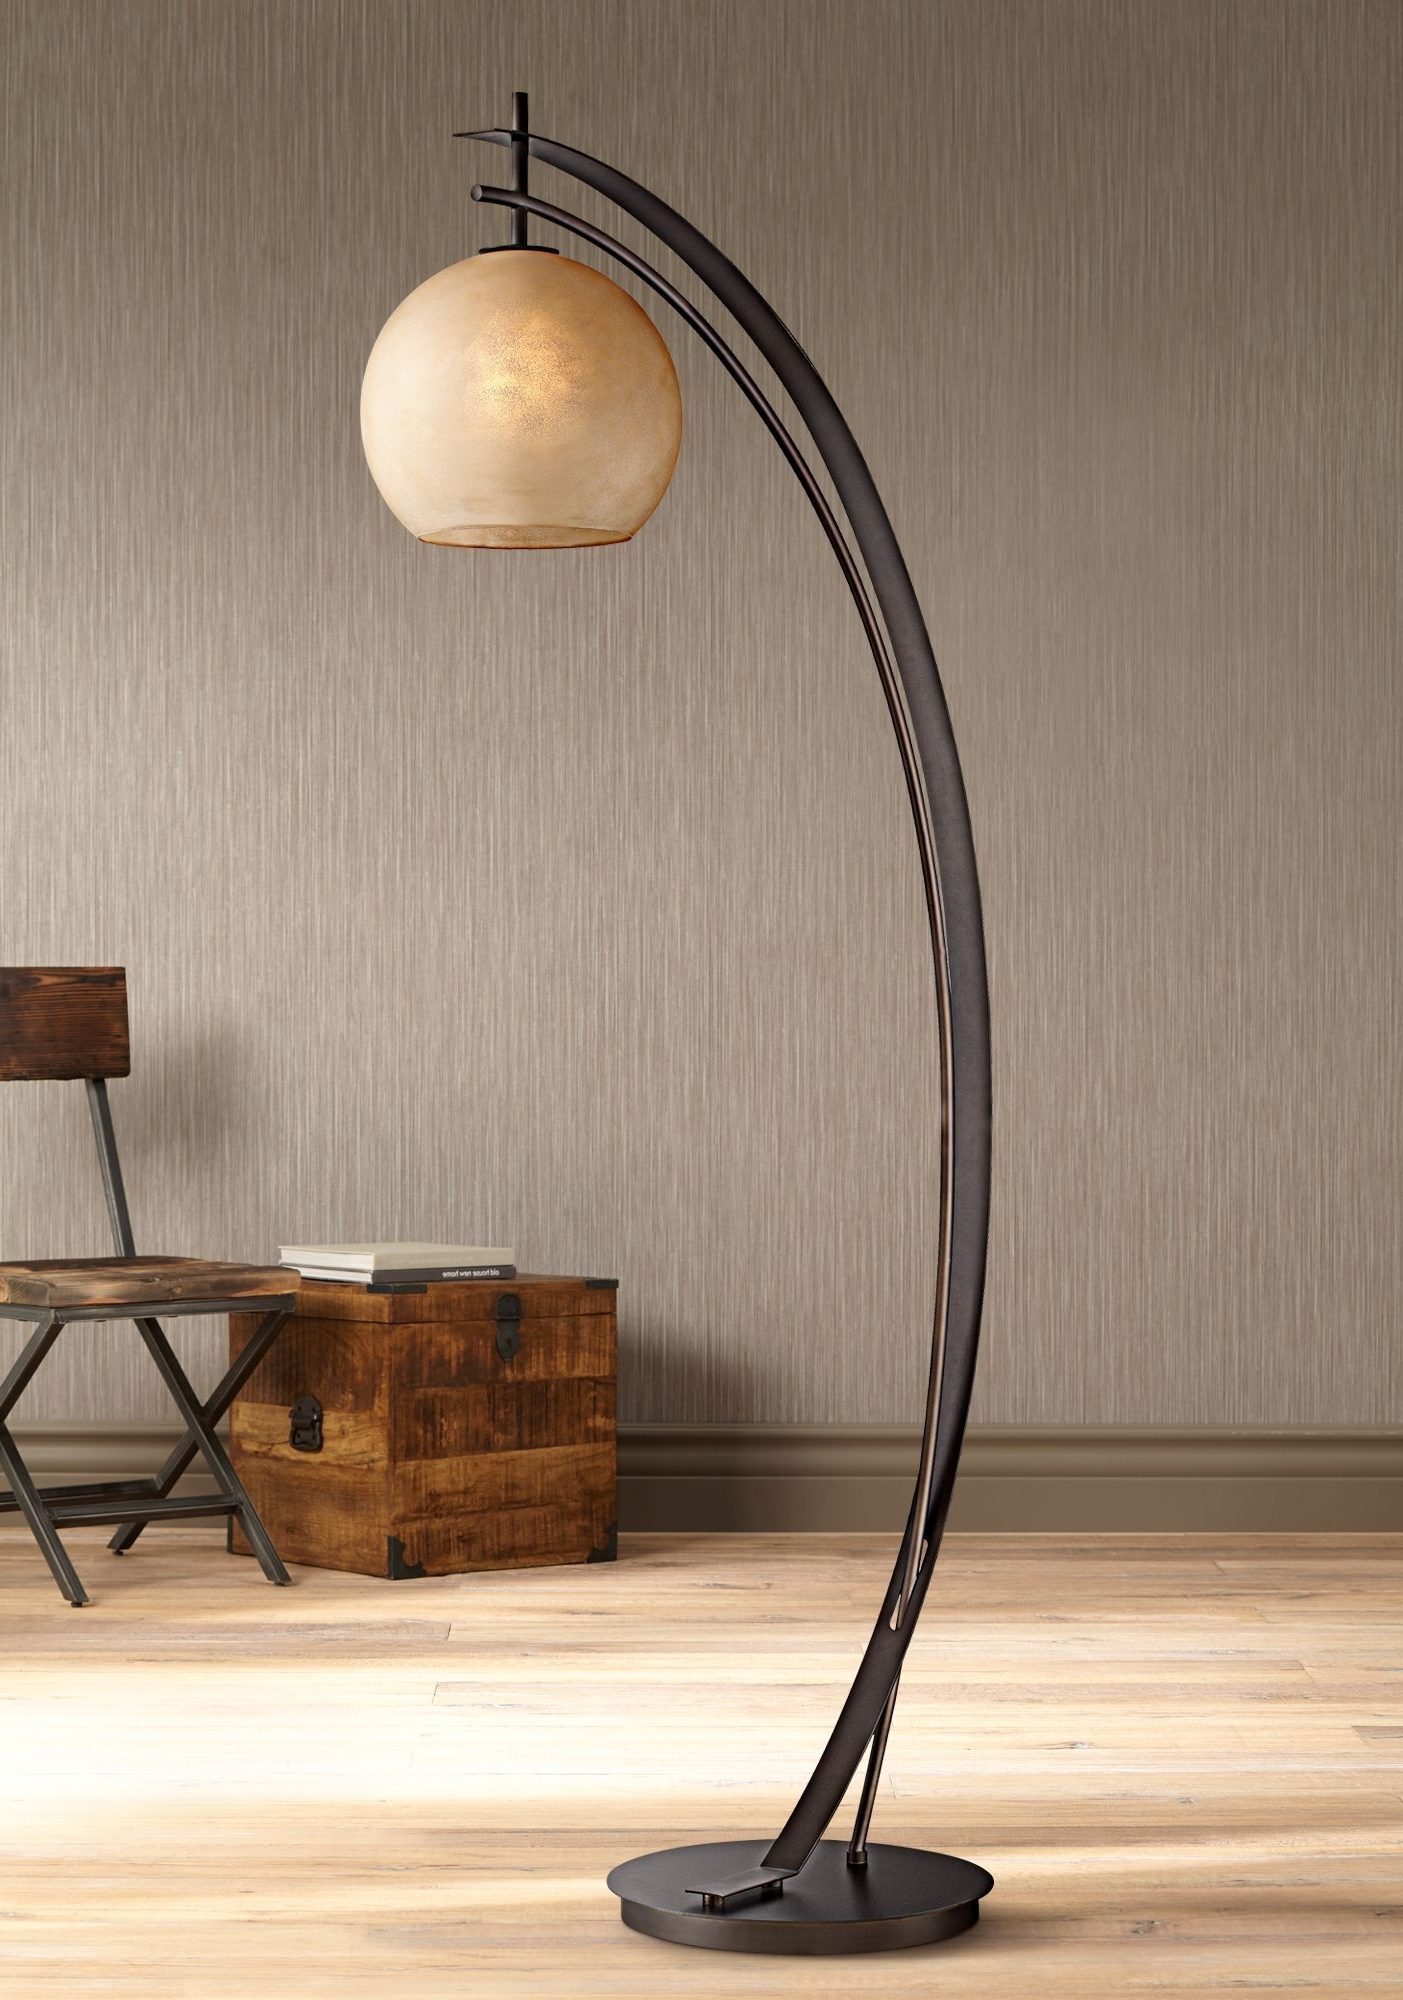 Bronze Living Room Table Lamps Intended For Well Known Possini Euro Venus Oil Rubbed Bronze Metal Arc Floor Lamp – #eu1G (View 13 of 15)